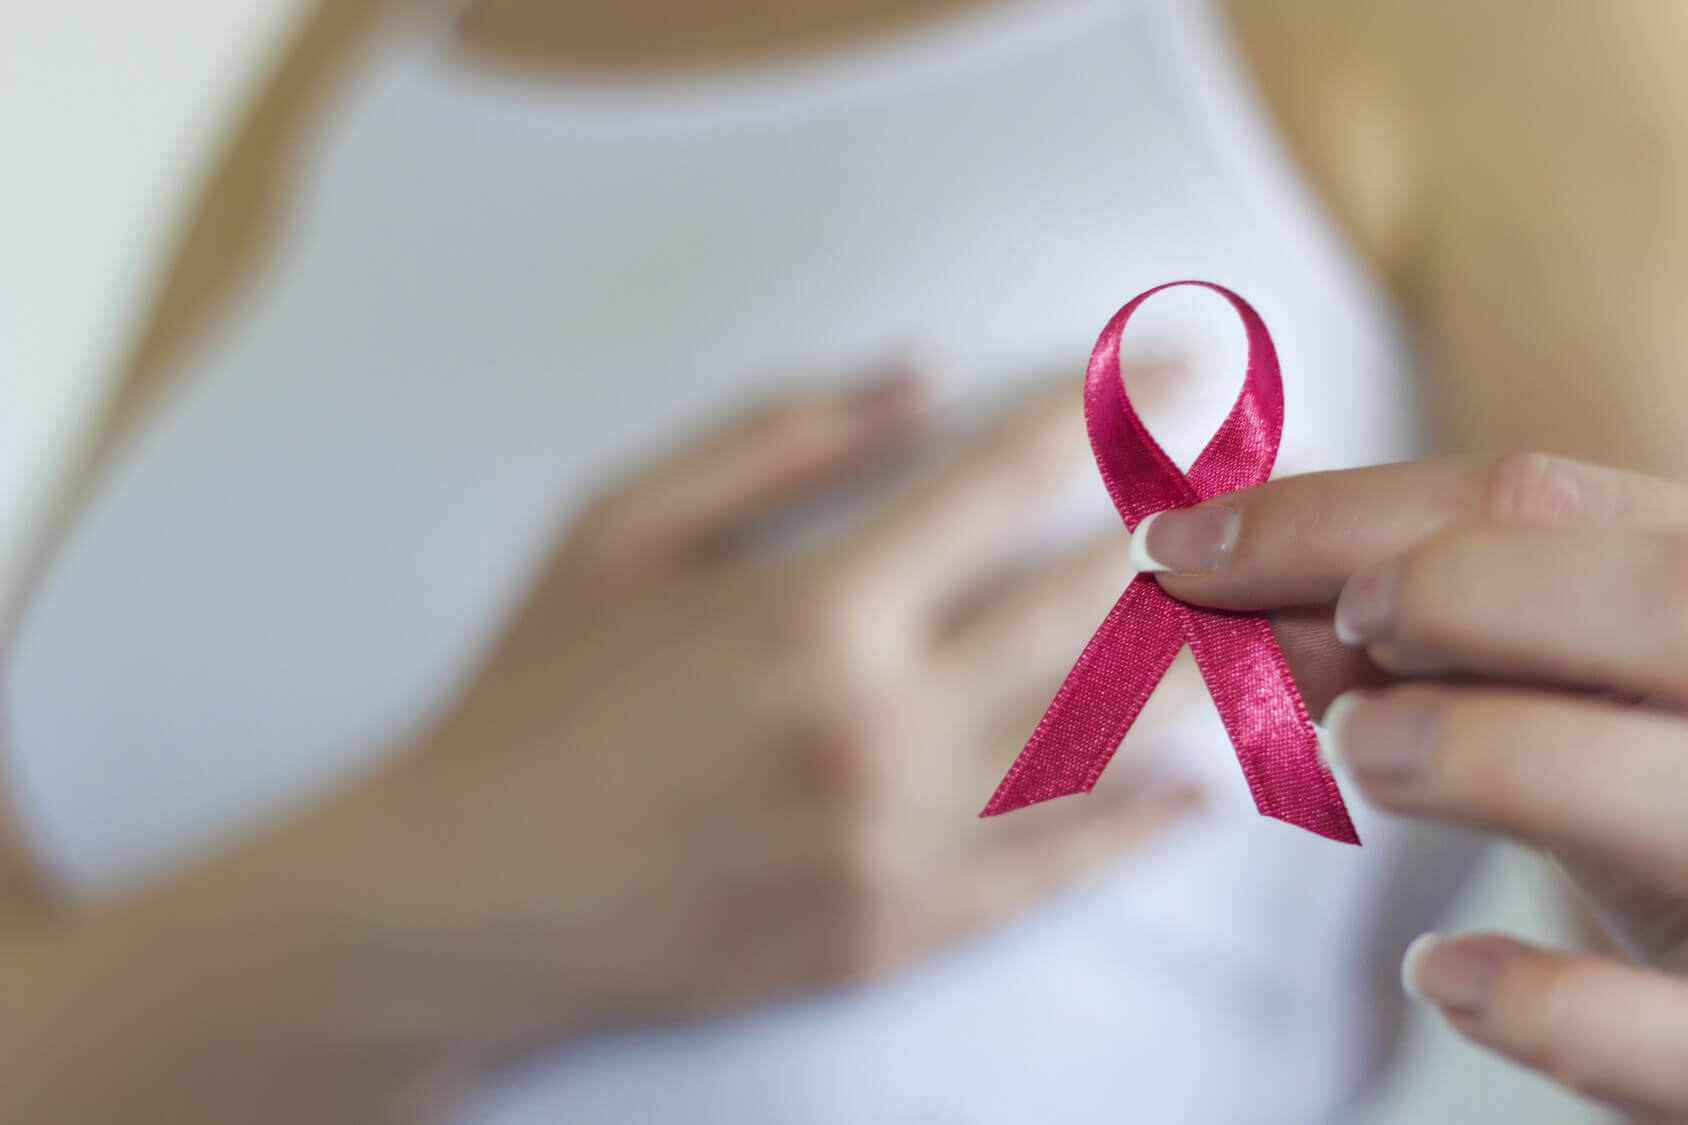 Breast cancer linked to bacterial imbalances